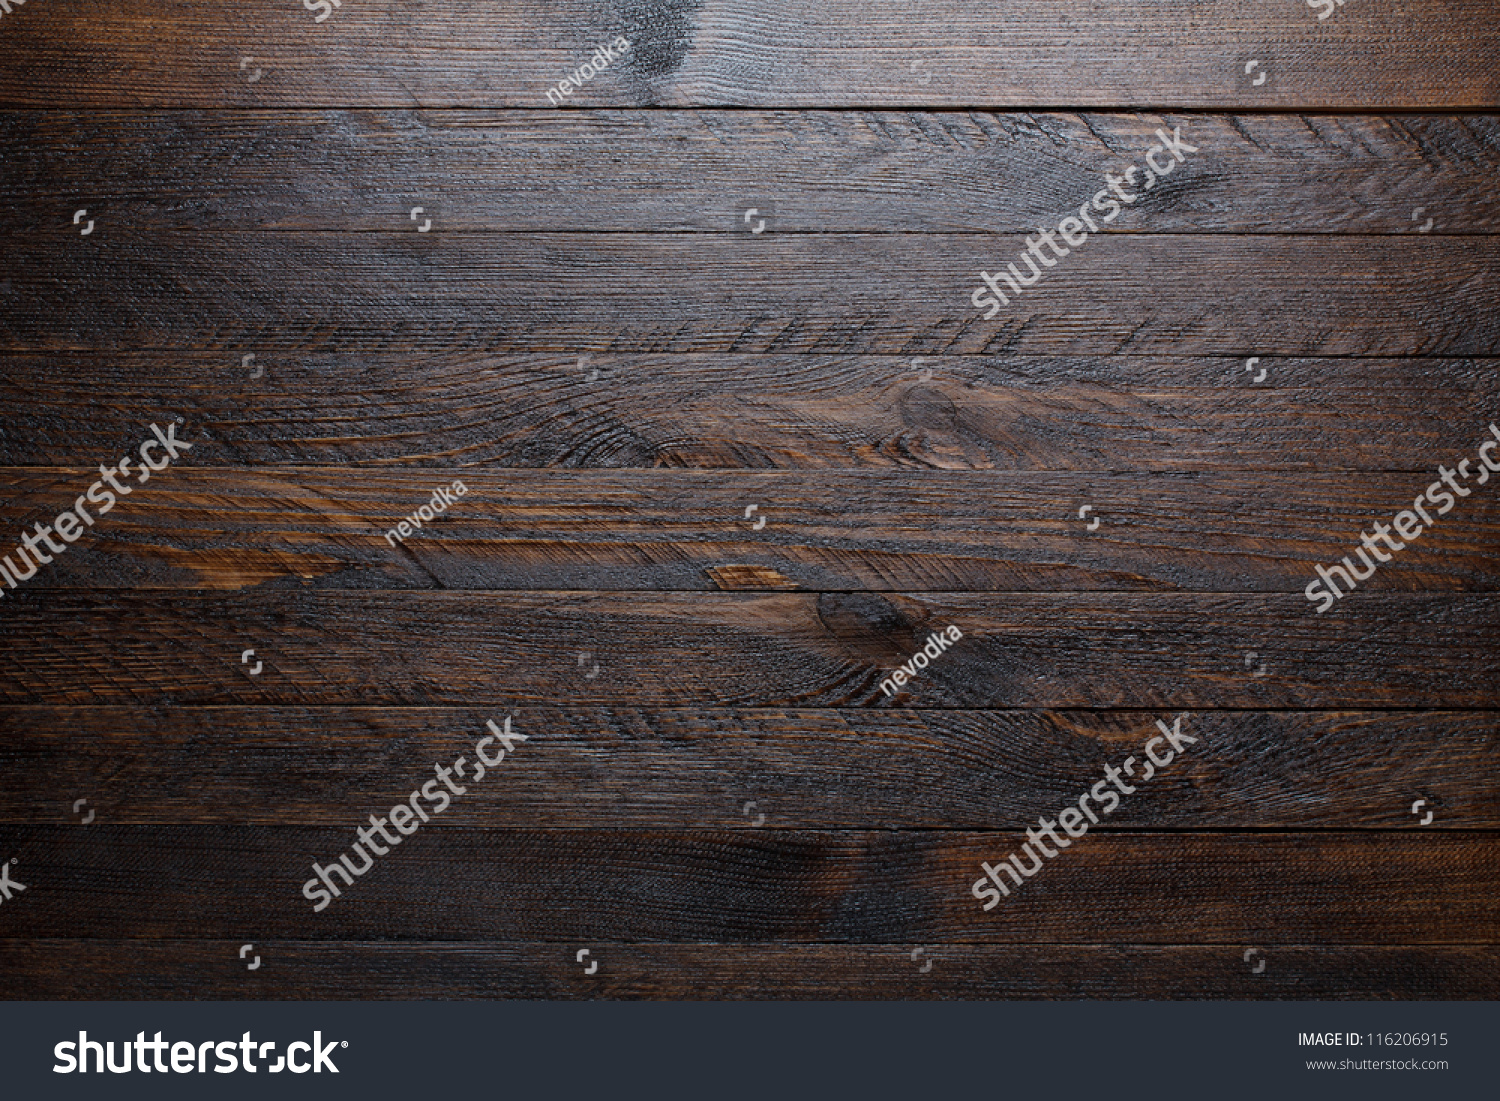 rustic wood floor background. Rustic Wooden Table Background Top View Stock Photo (Royalty Free) 116206915 - Shutterstock Wood Floor